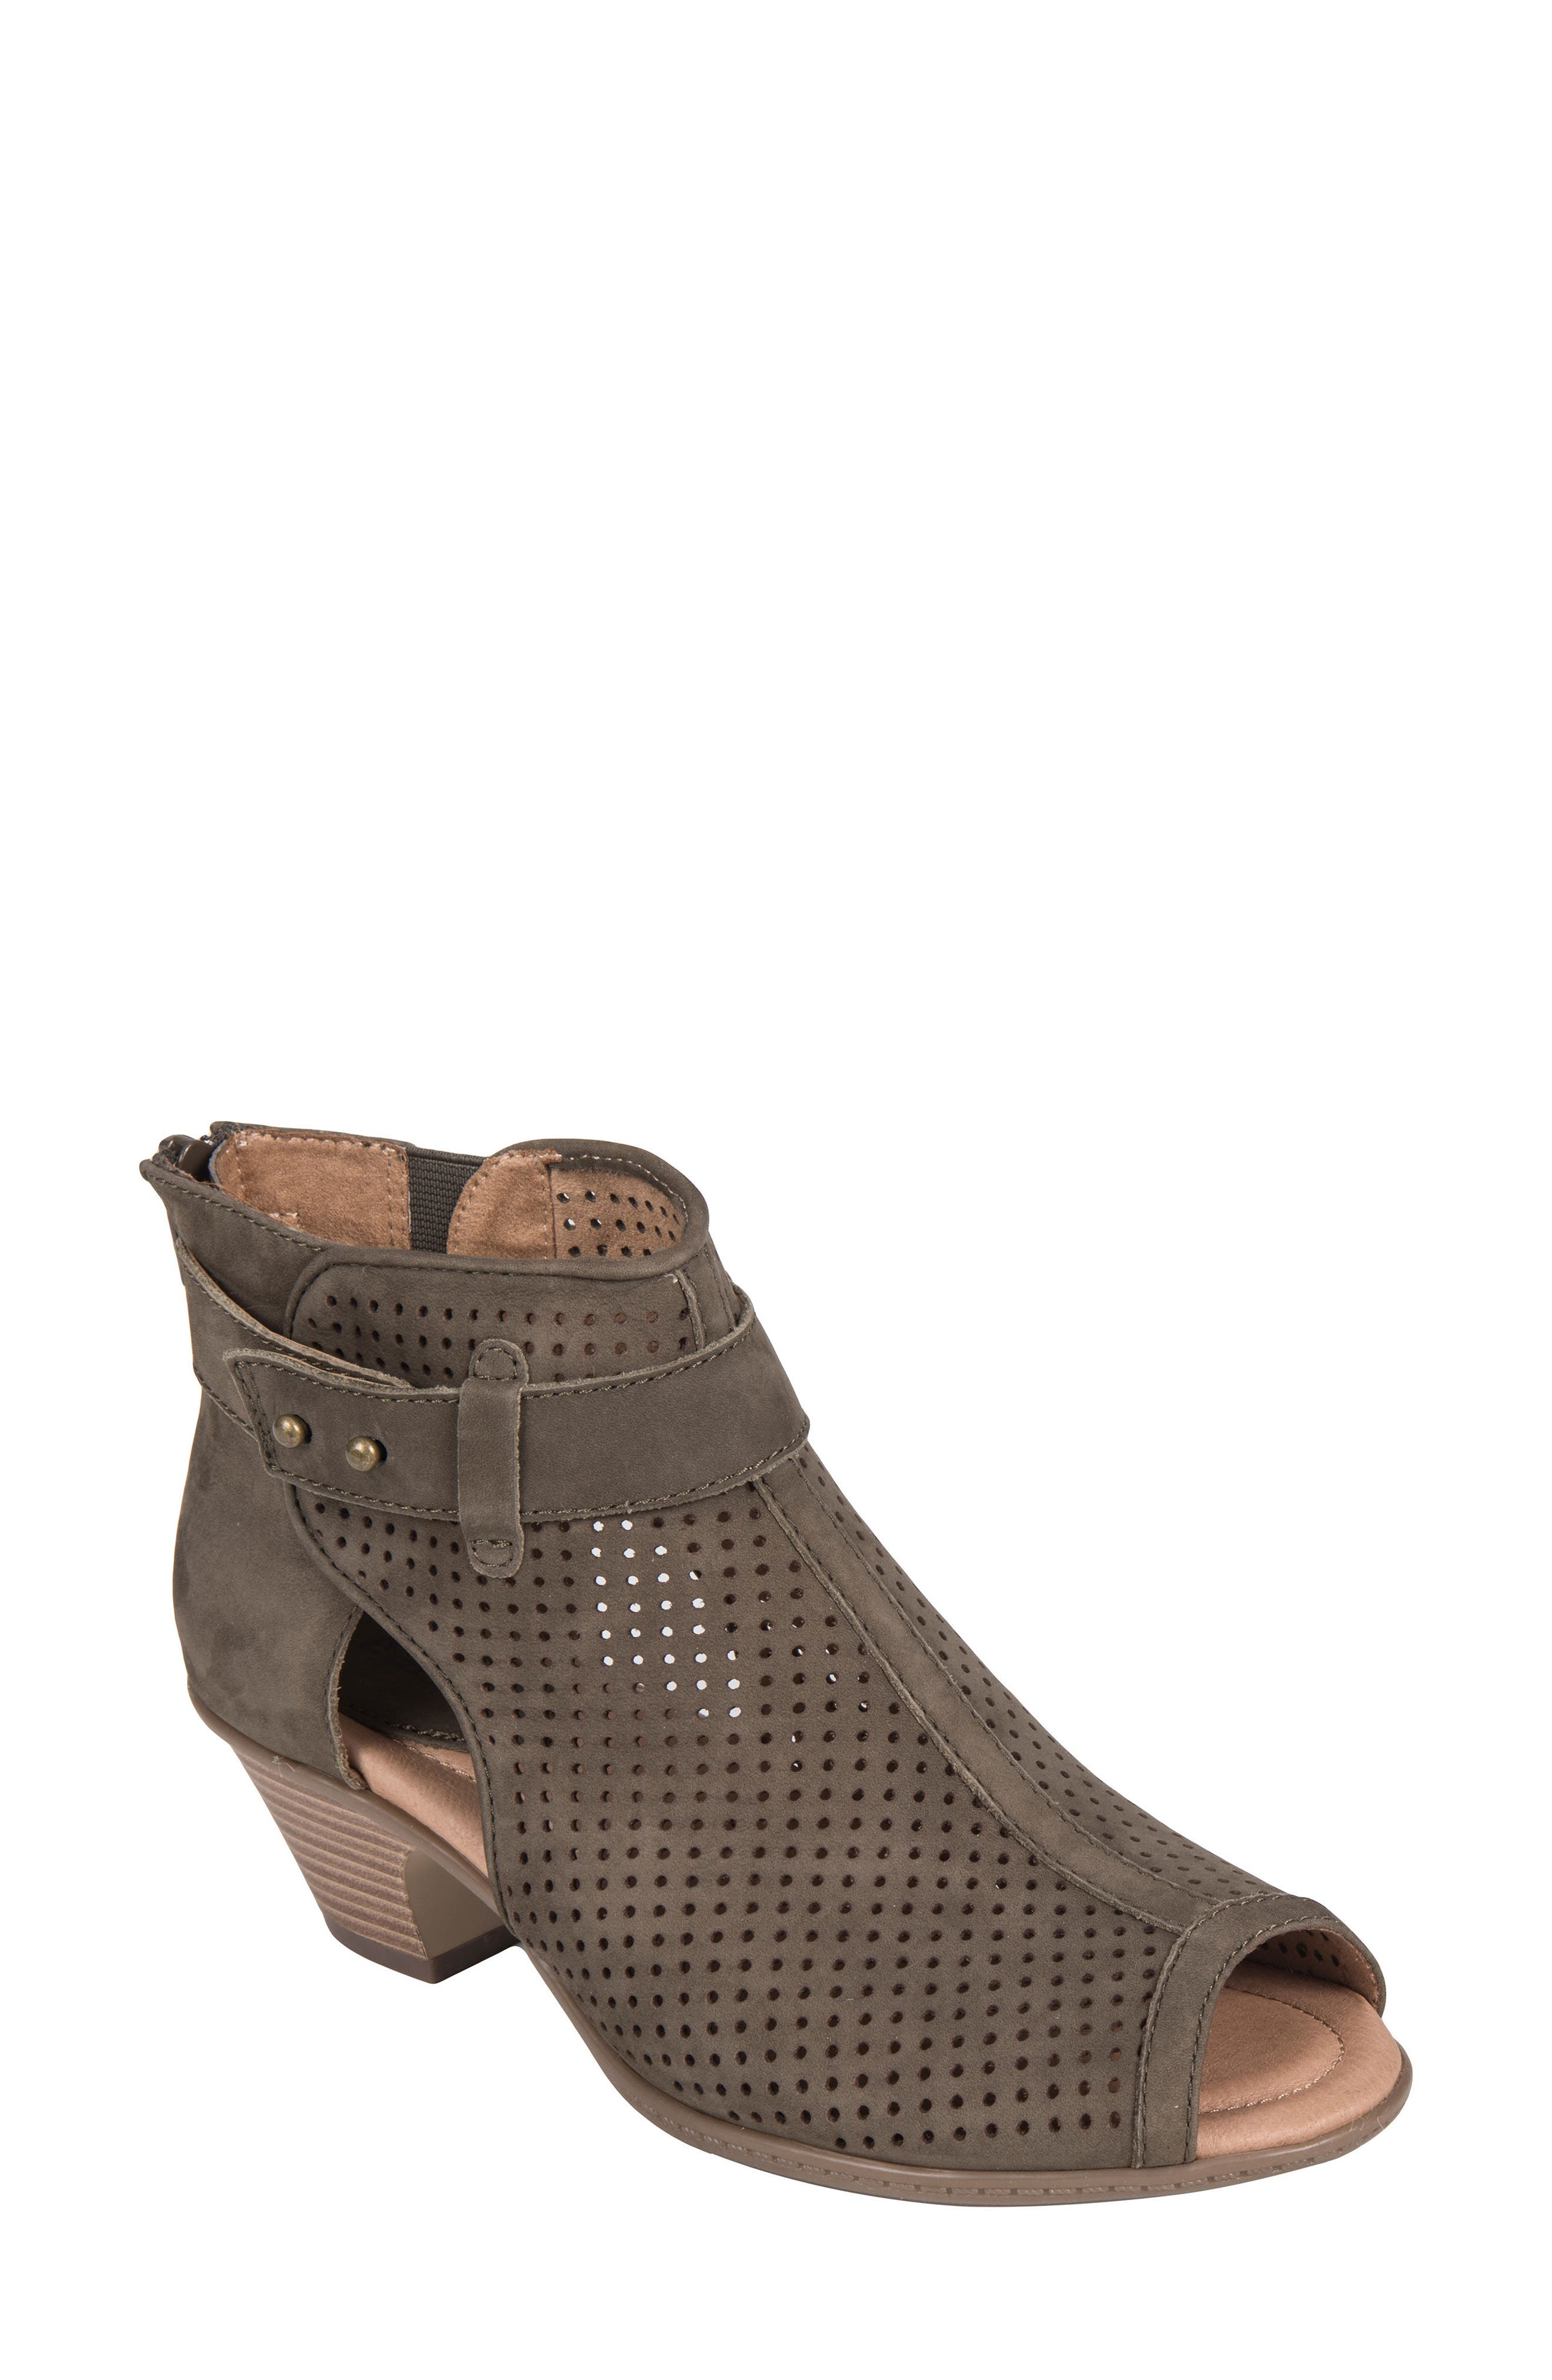 Intrepid Peep Toe Bootie,                         Main,                         color, DARK OLIVE NUBUCK